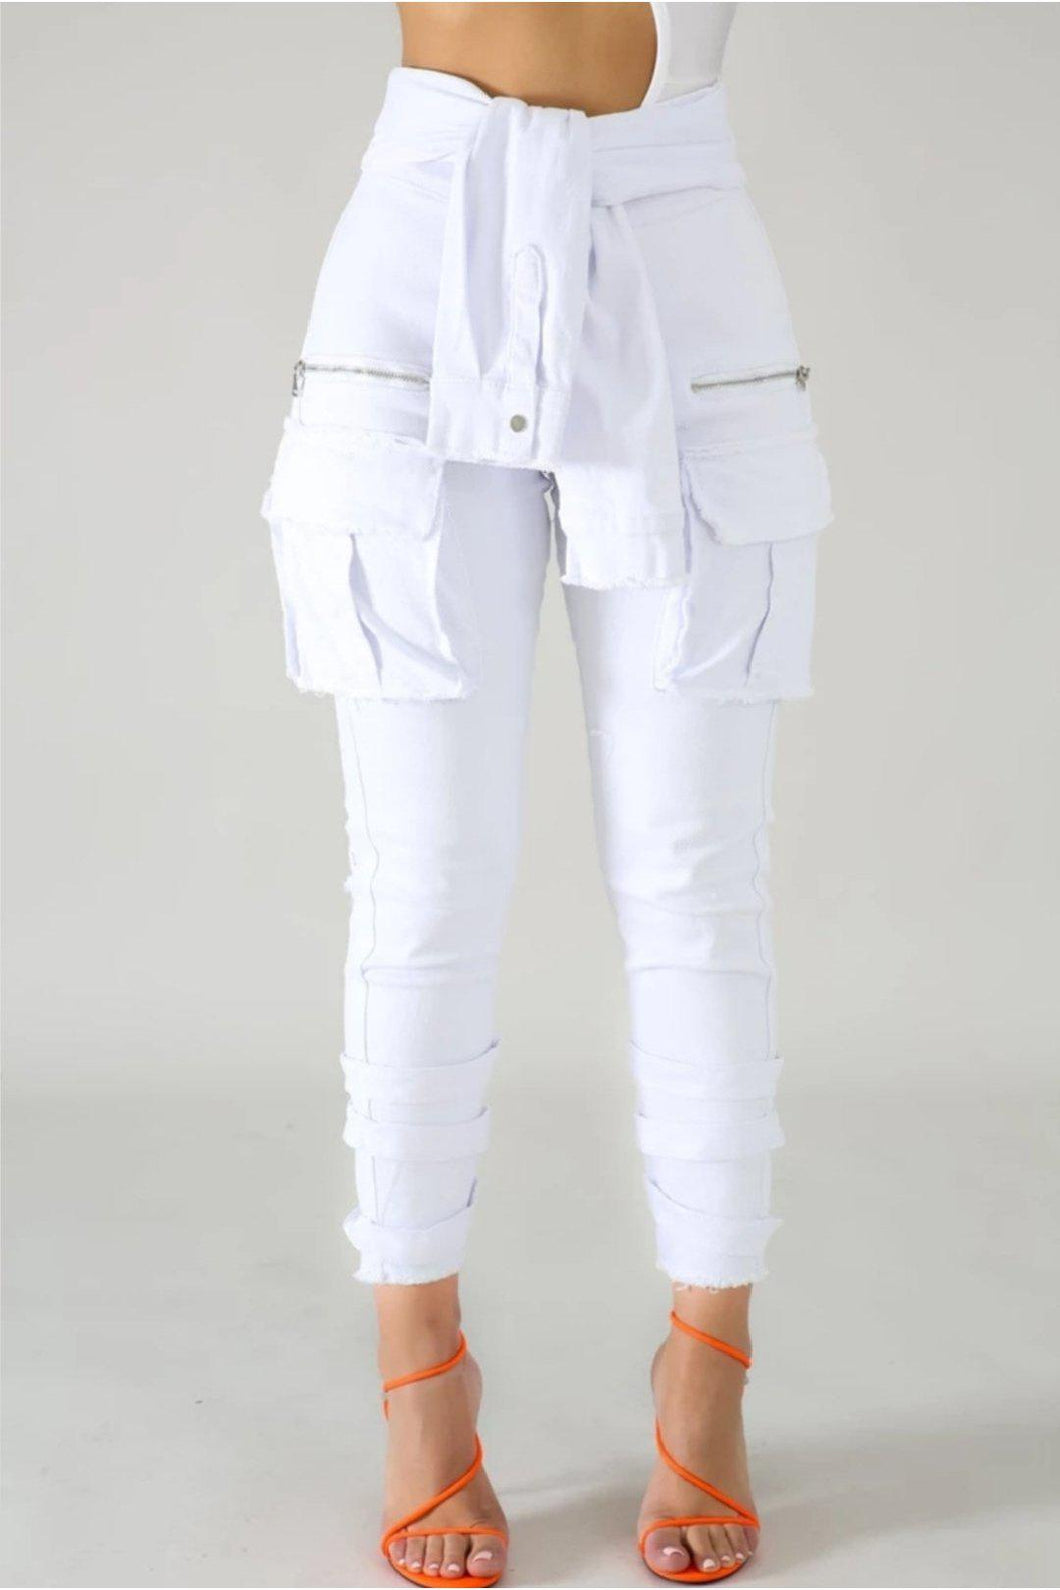 It's A Wrap Denim Jeans - 1uniqueboutiques